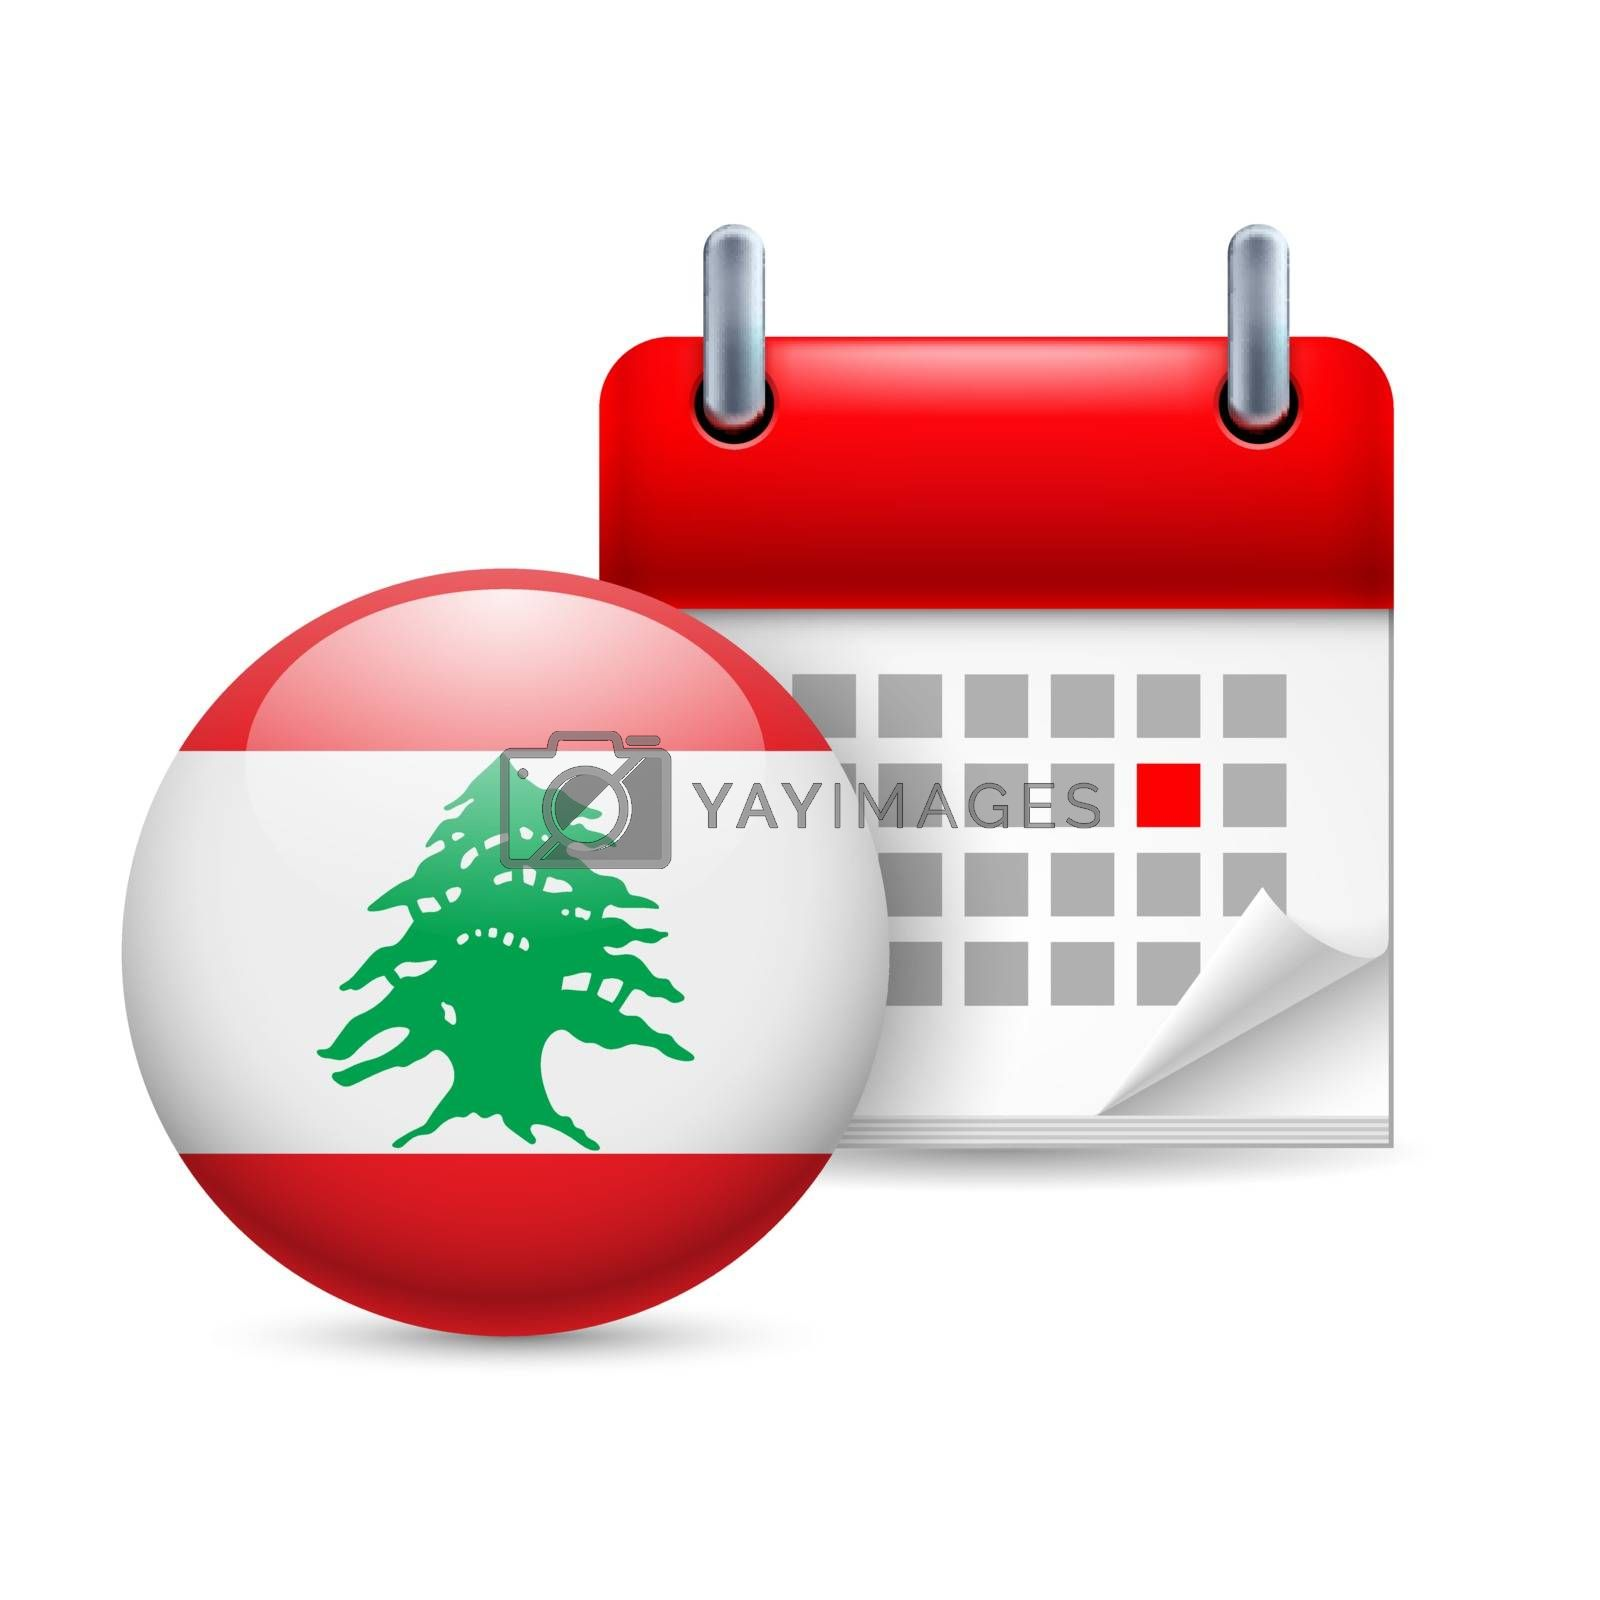 Royalty free image of Icon of National Day in Lebanon by dvarg